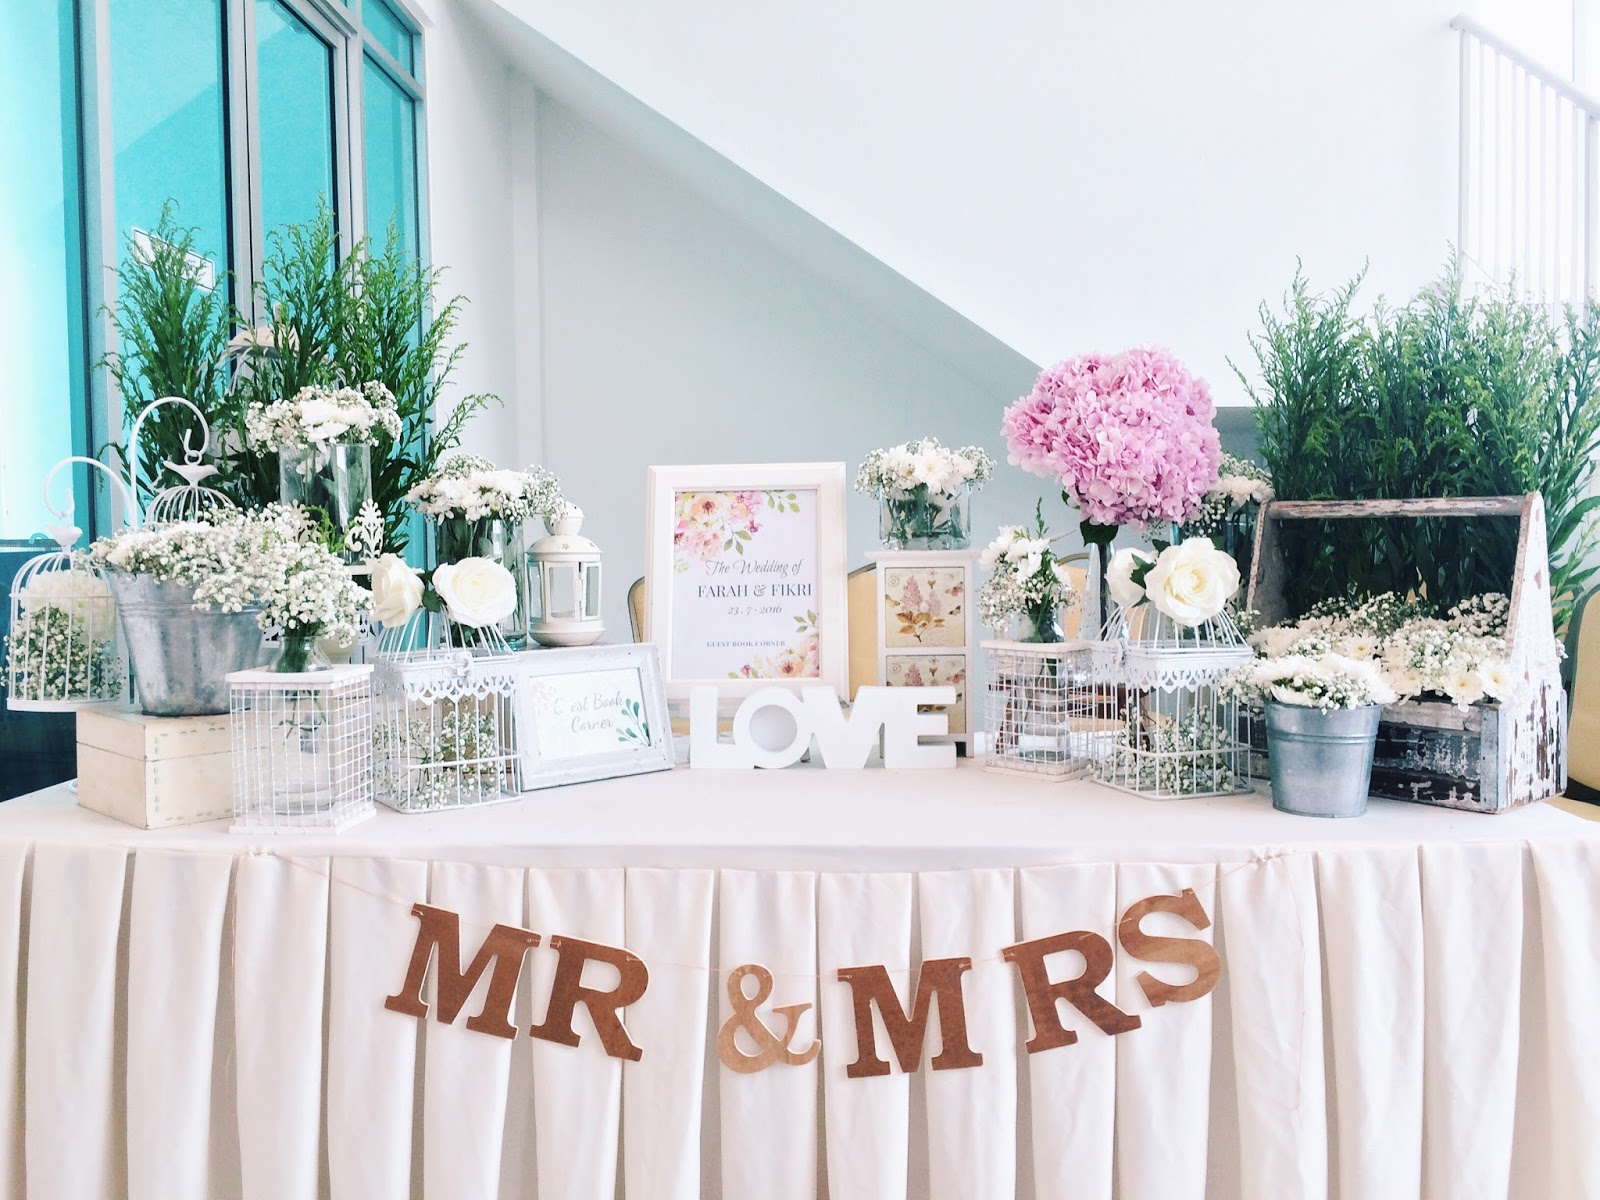 Ideasbyfarah: WEDDING GUEST BOOK TABLE DECOR GARDEN THEME MALAYSIA